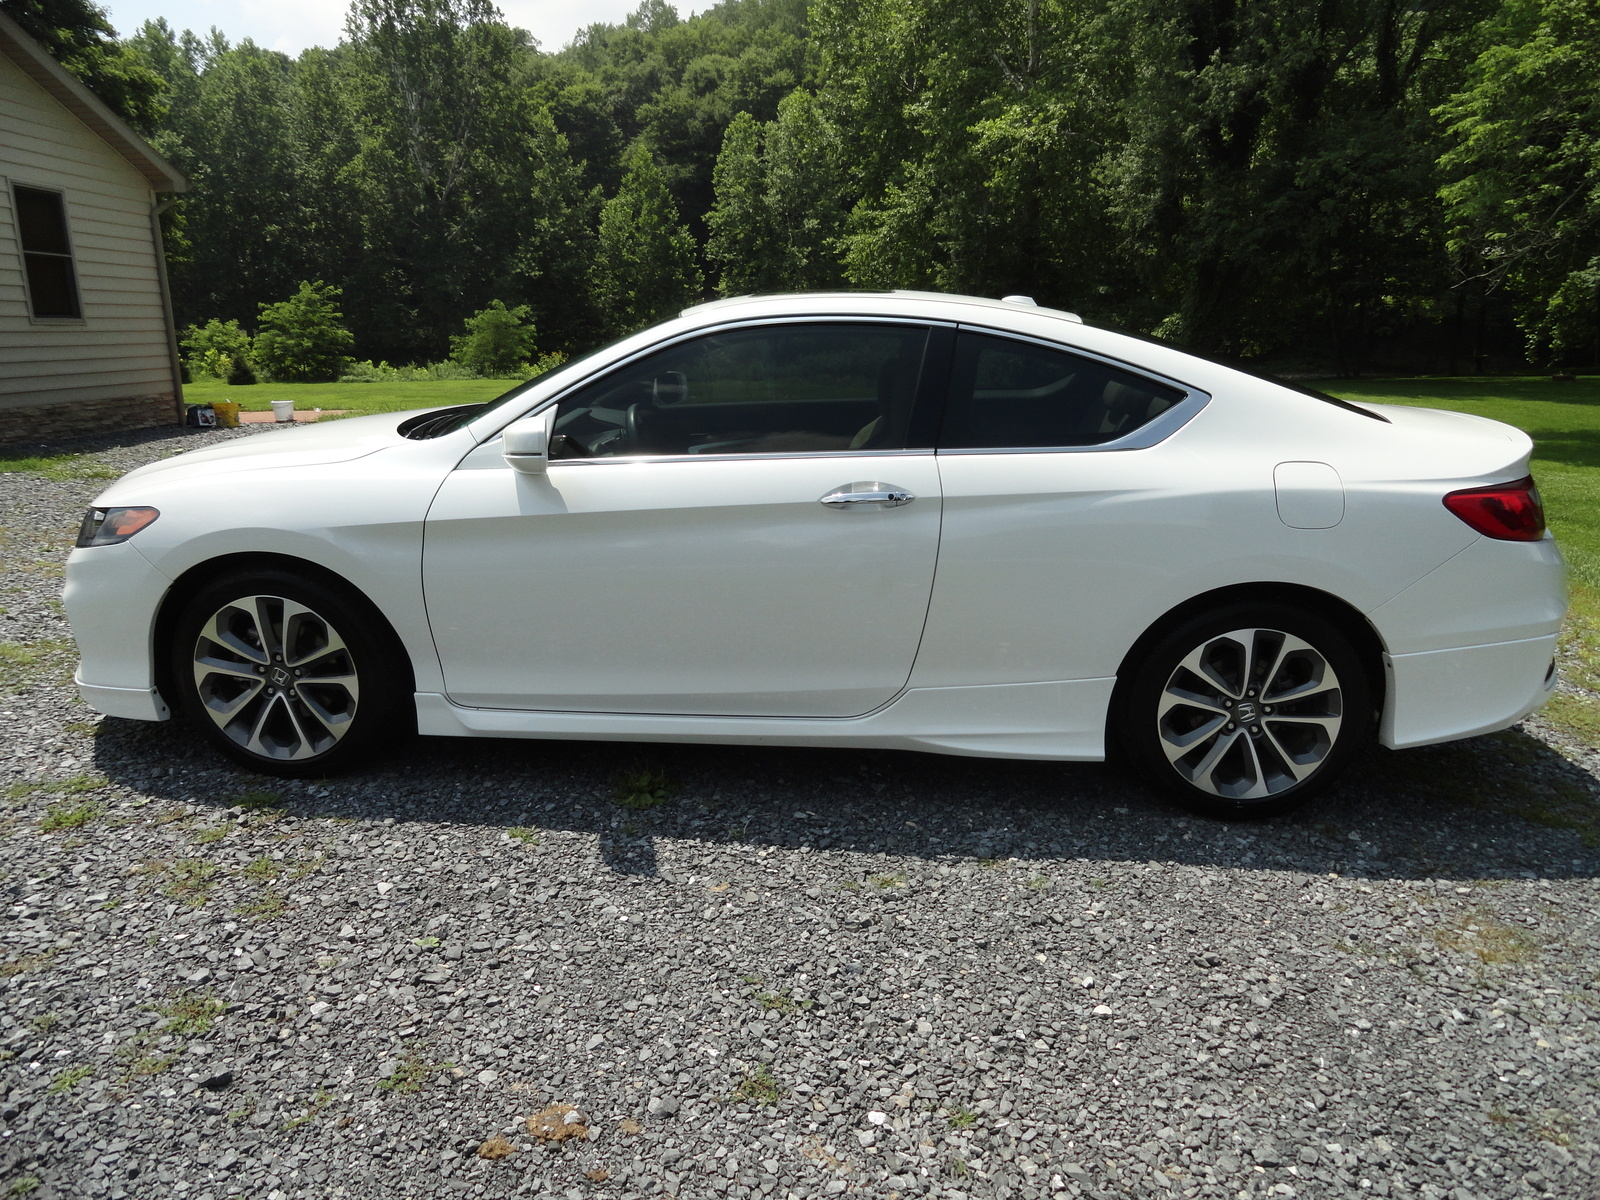 Picture of 2013 Honda Accord Coupe EX-L V6, exterior